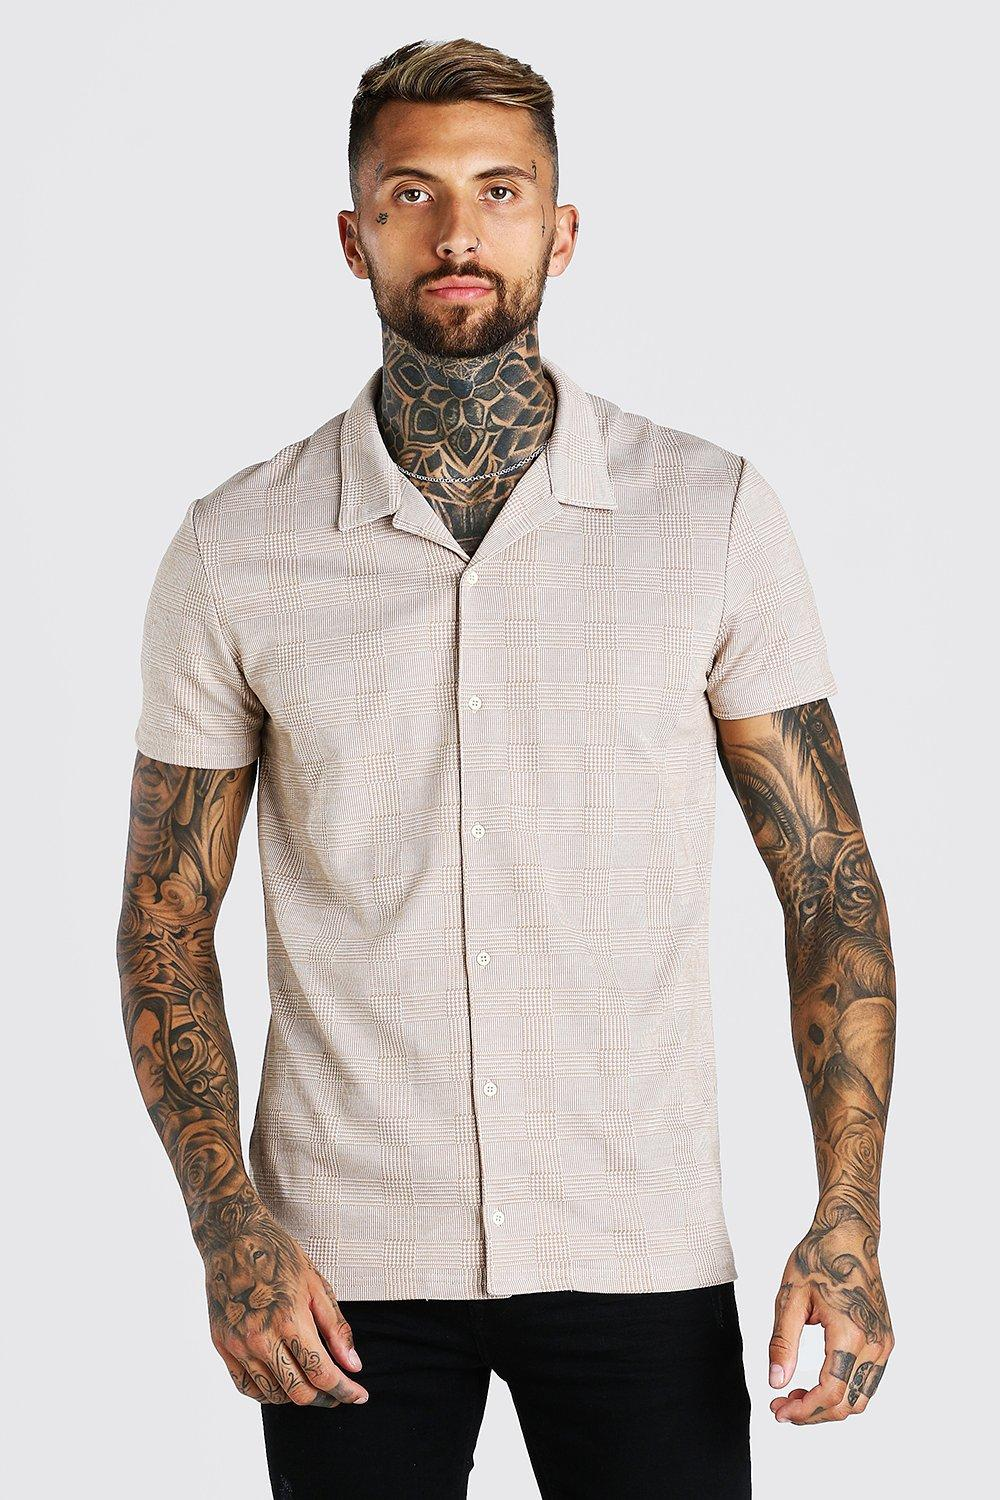 Mens Vintage Shirts – Casual, Dress, T-shirts, Polos Mens Short Sleeve Revere Collar Textured Jacquard Shirt - Brown $10.00 AT vintagedancer.com